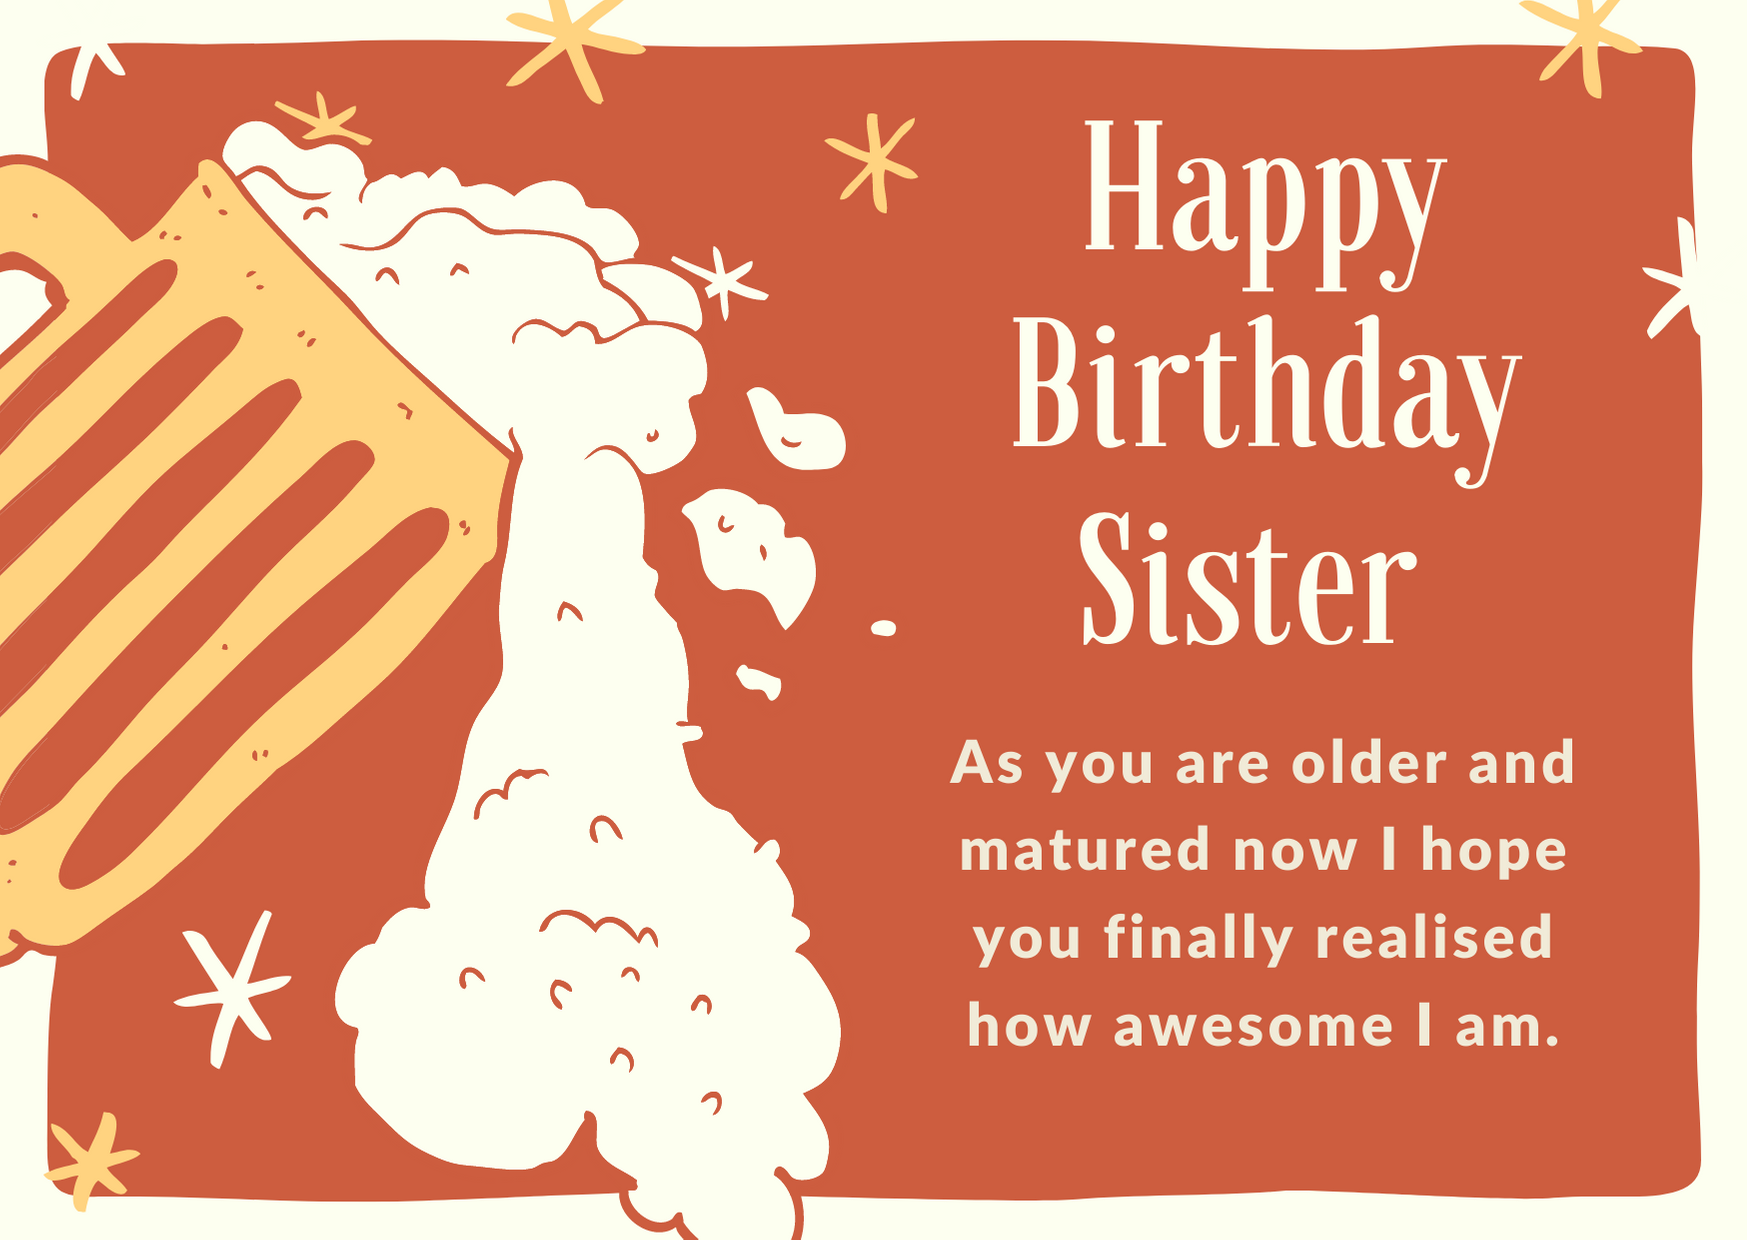 bday wishes to cousin sister